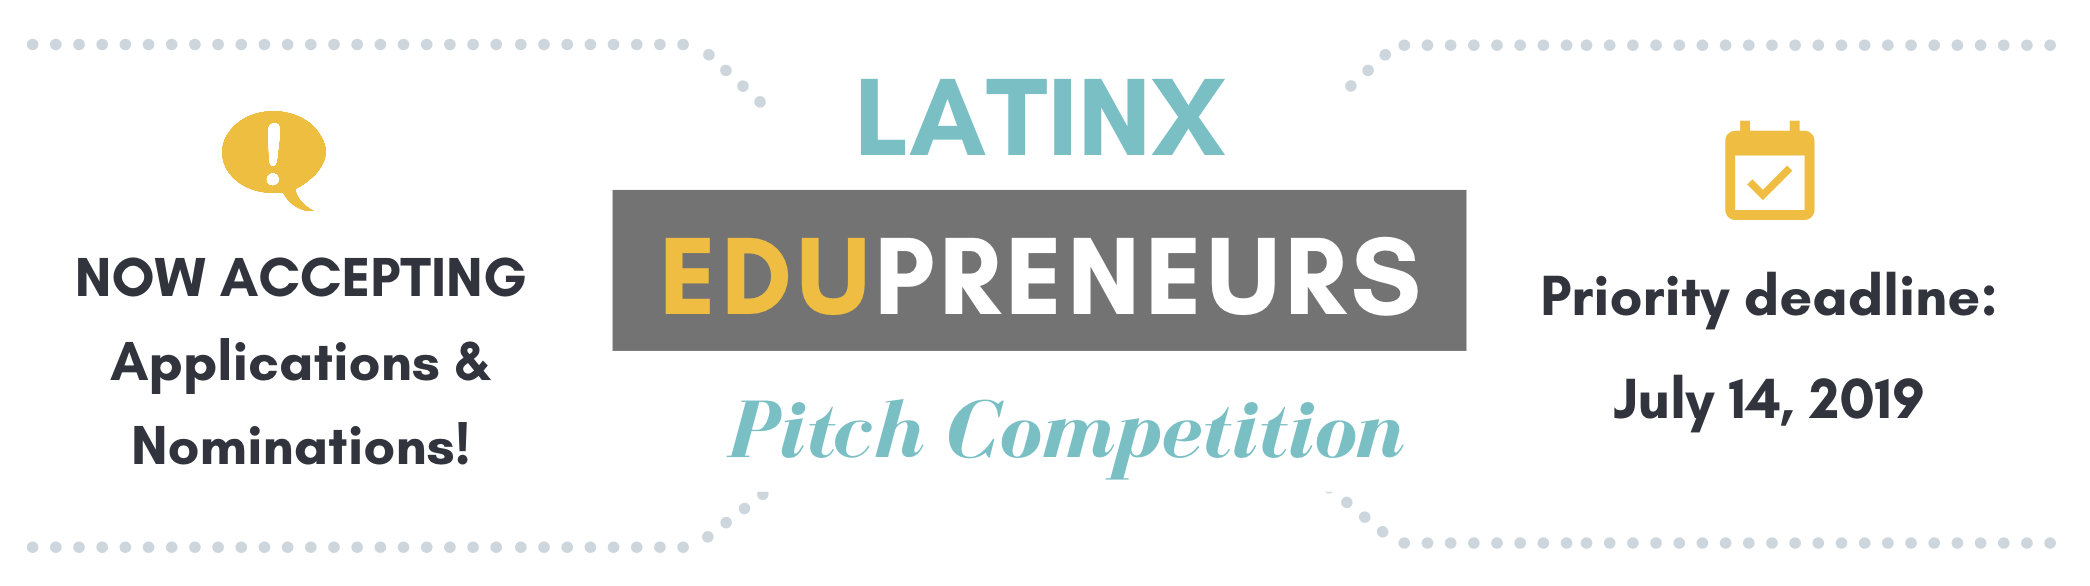 Pitch Competition Deadline